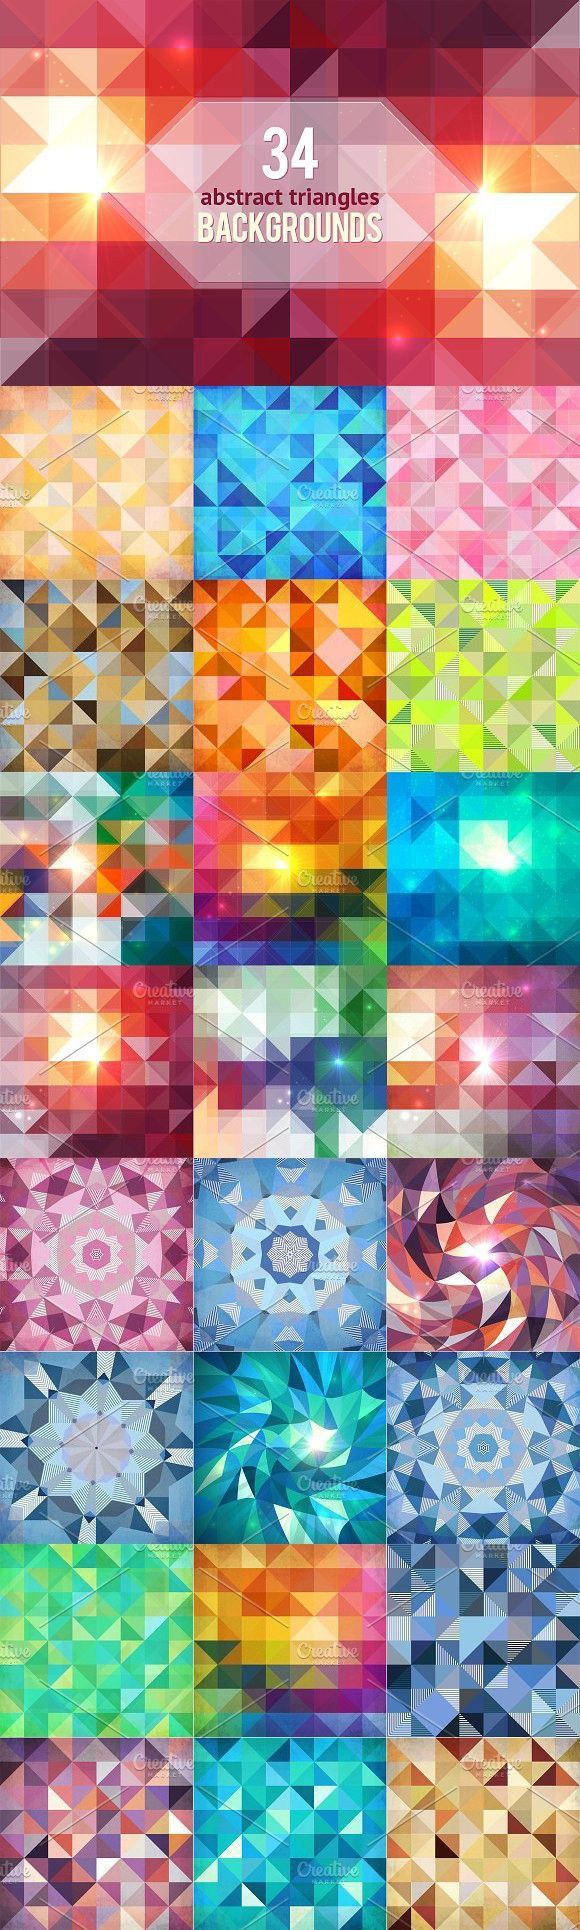 34 geometric abstract backgrounds. Patterns. $15.00